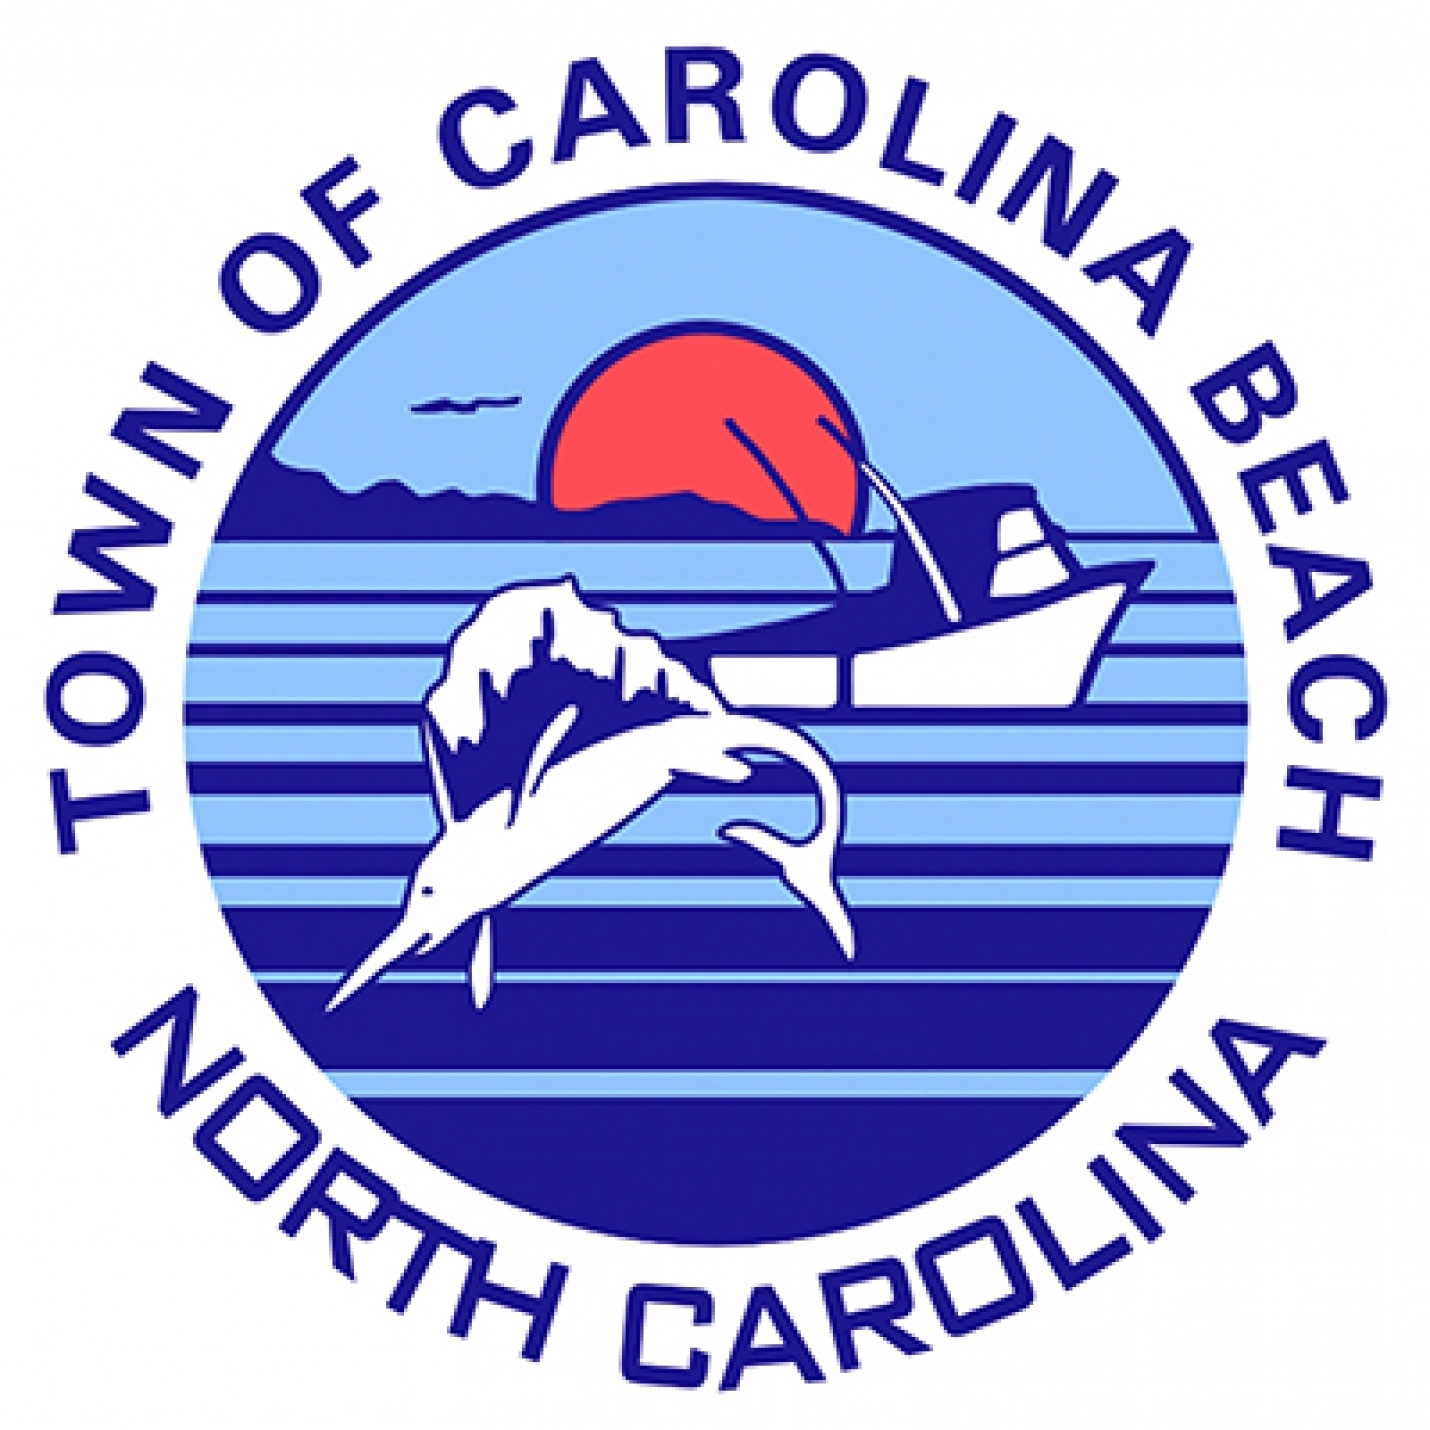 Food Truck Owners Suing Carolina Beach Over Ordinance Restrictions